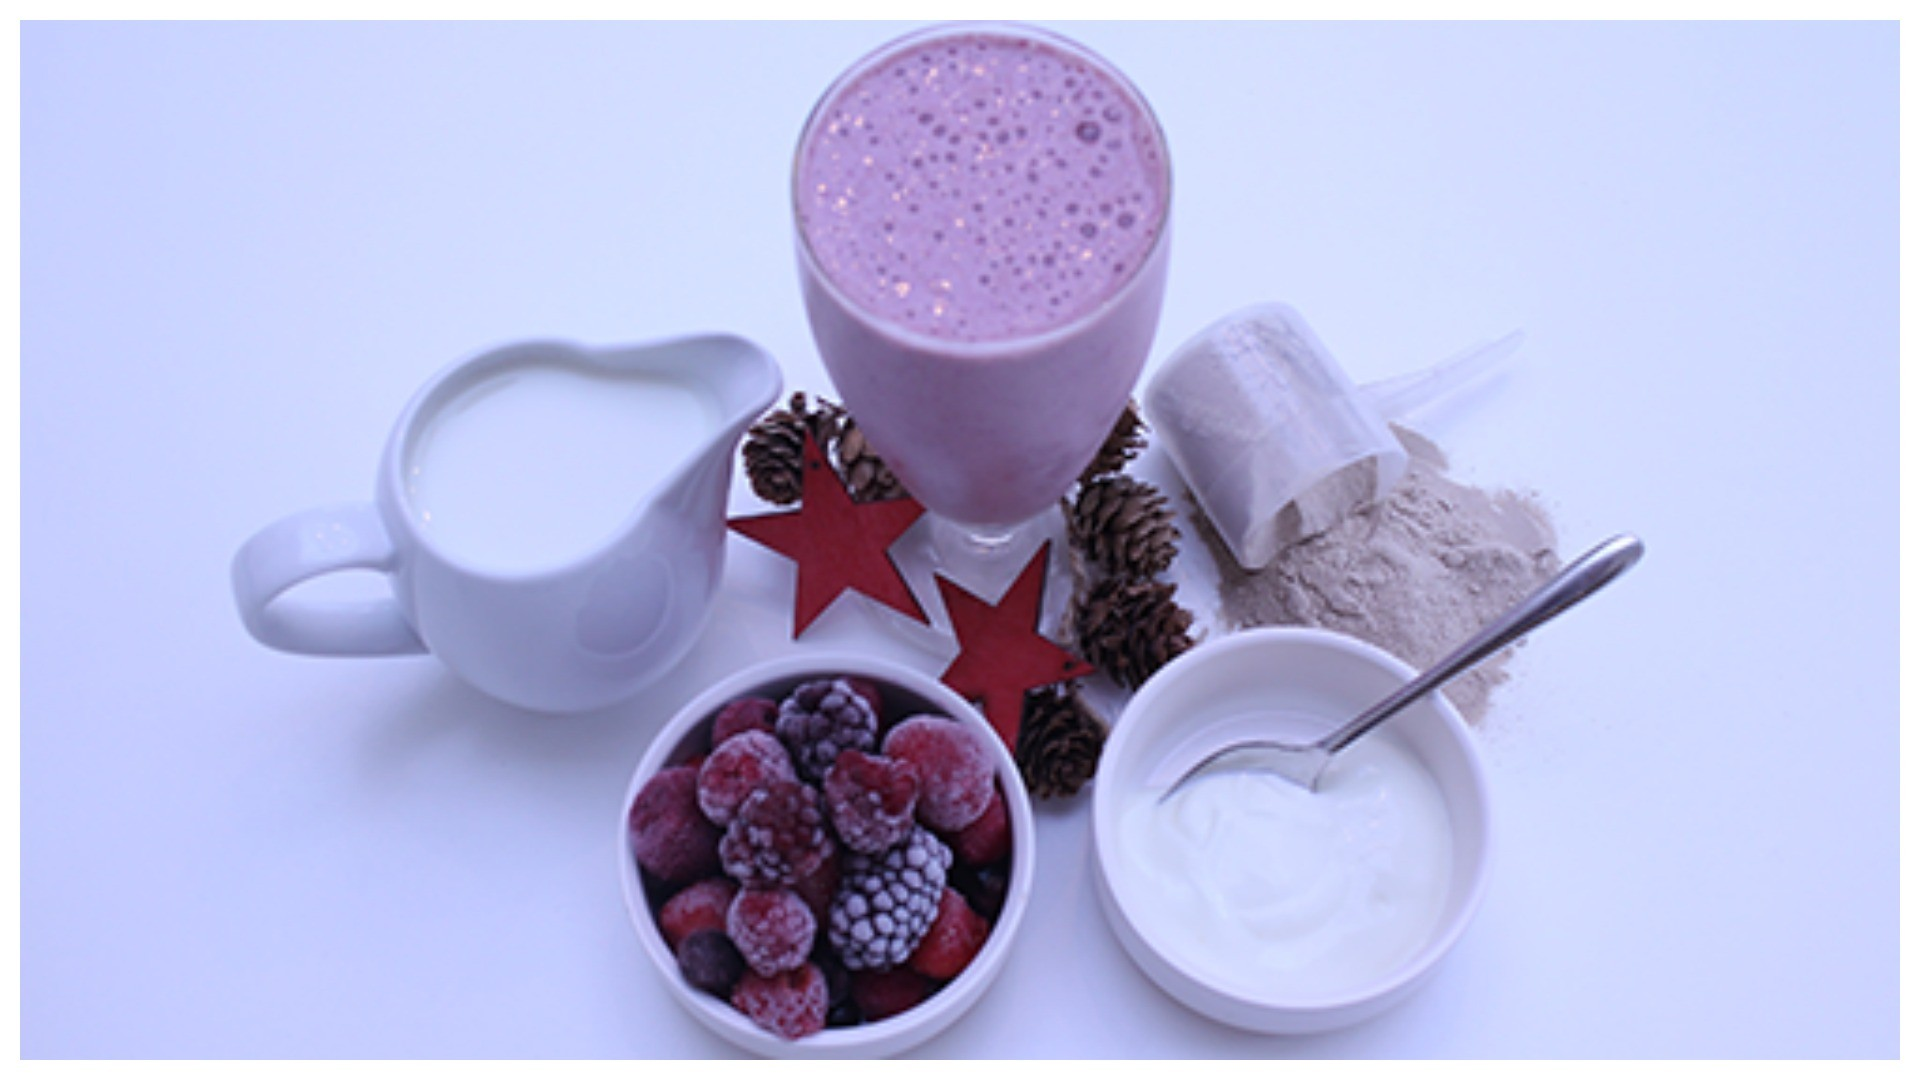 This recipe also gives you an antioxidant hit with the tasty frozen berries it contains